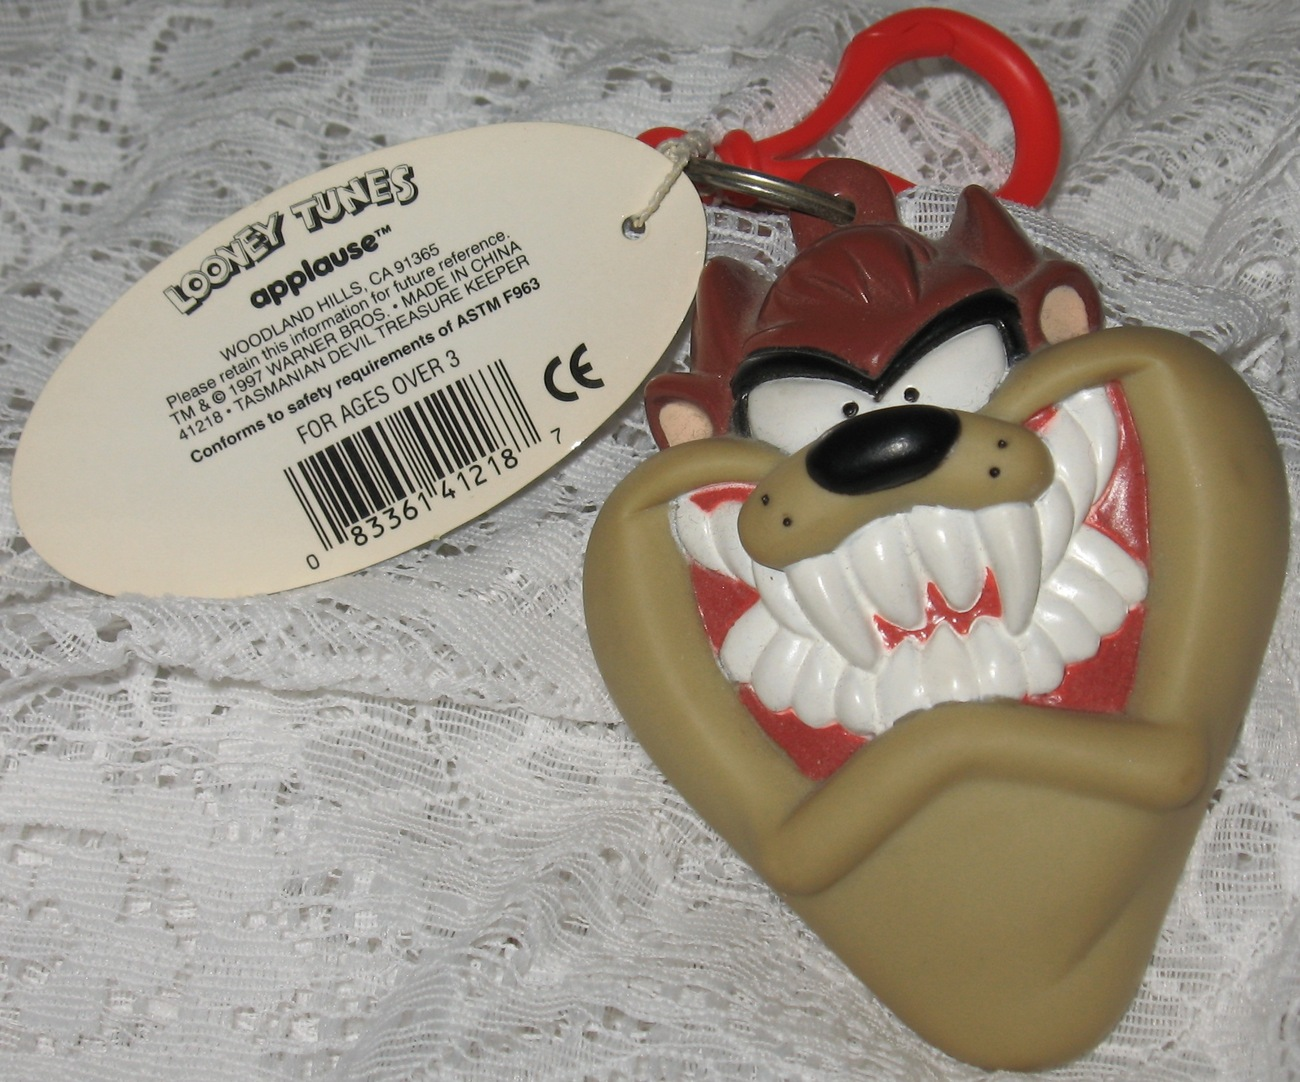 Tasmanian Devil Keychain/Change & trinkets Holder Looney Tunes Collectors item